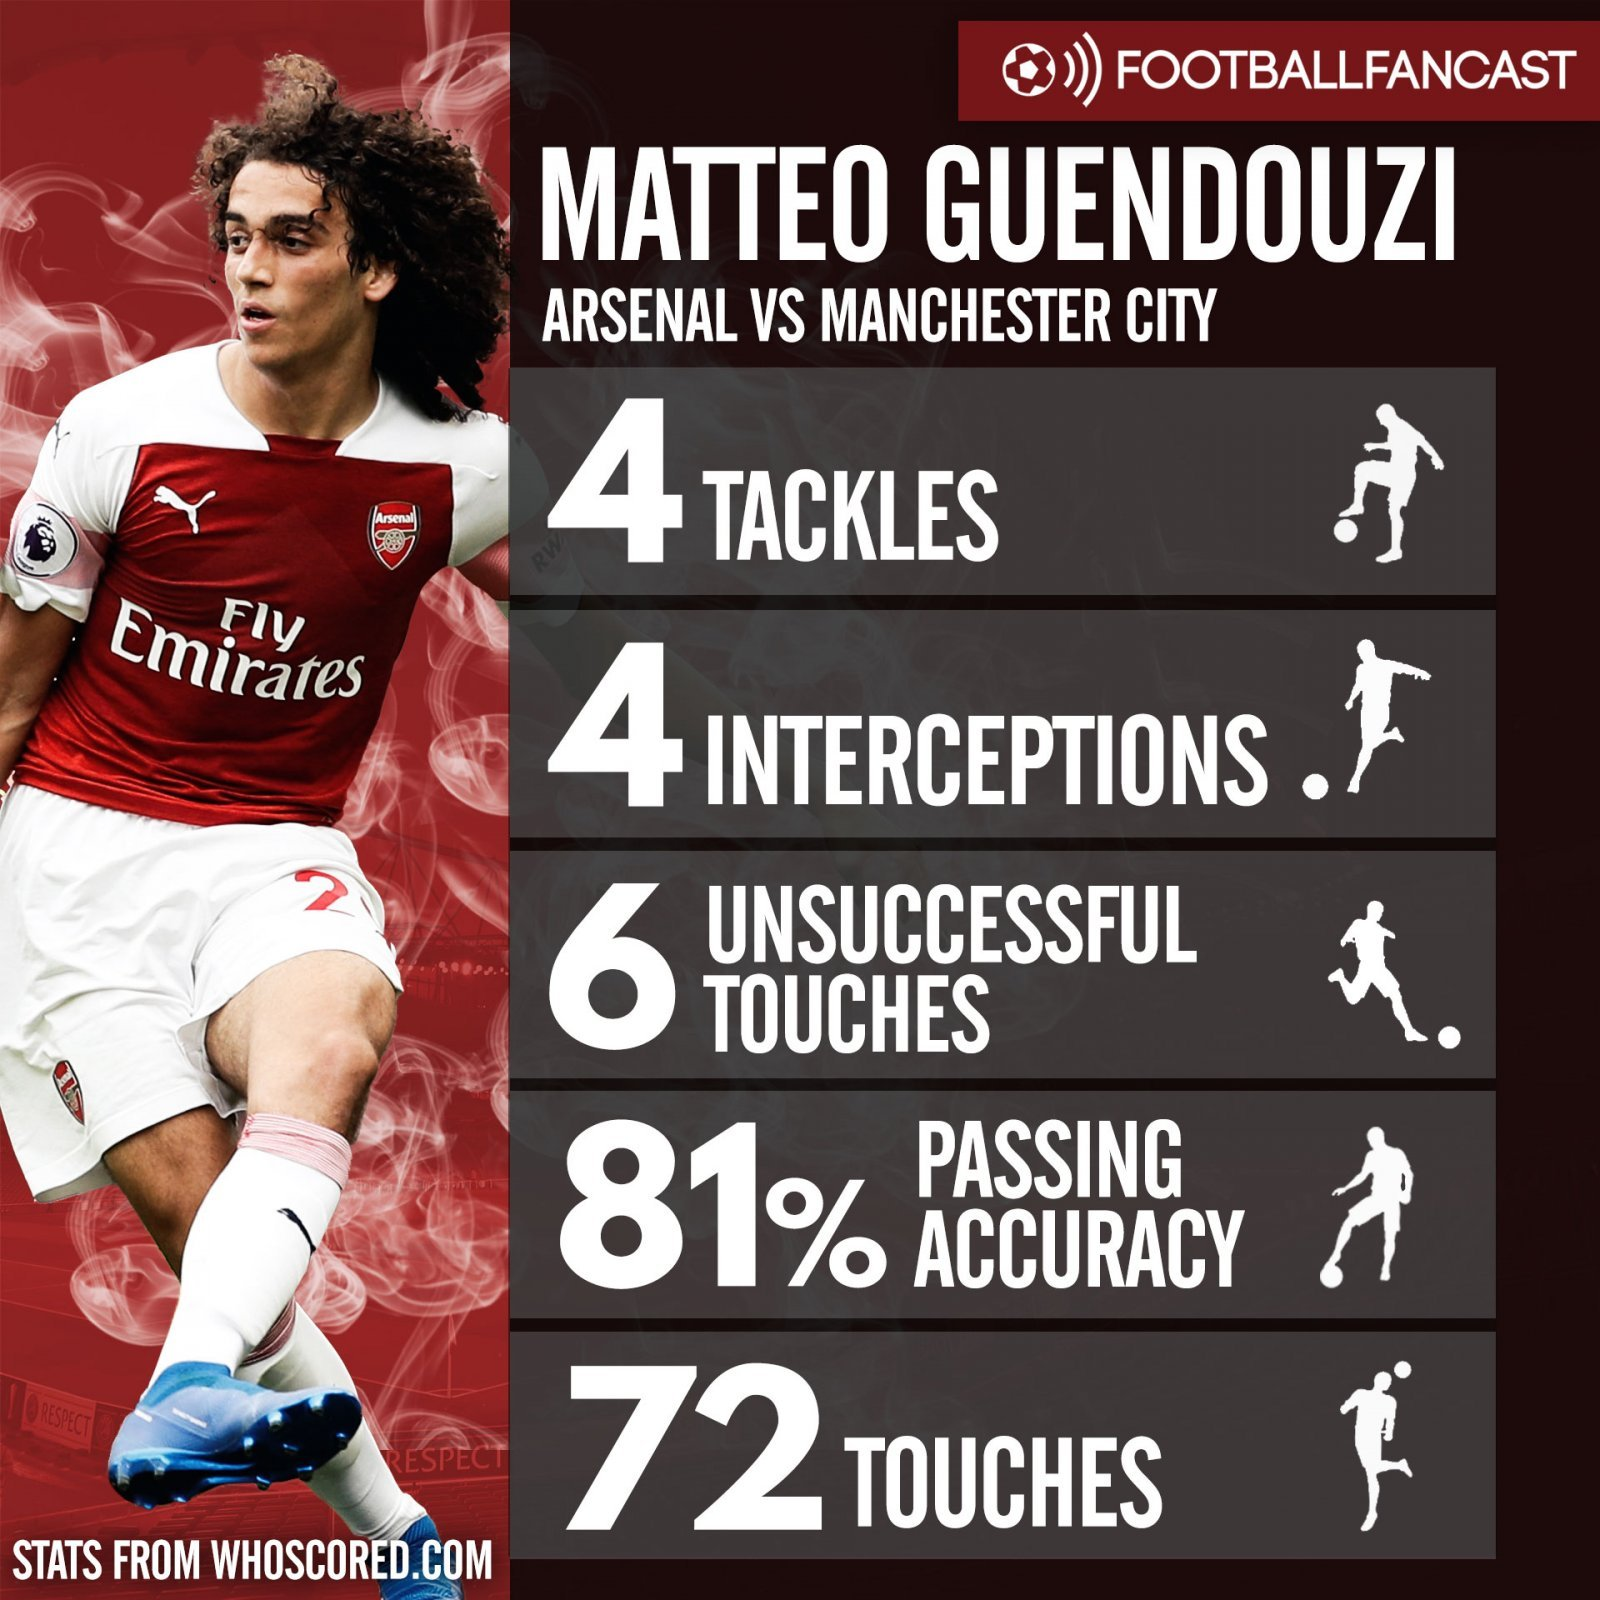 Matteo Guendouzi's stats from Arsenal's defeat to Man City